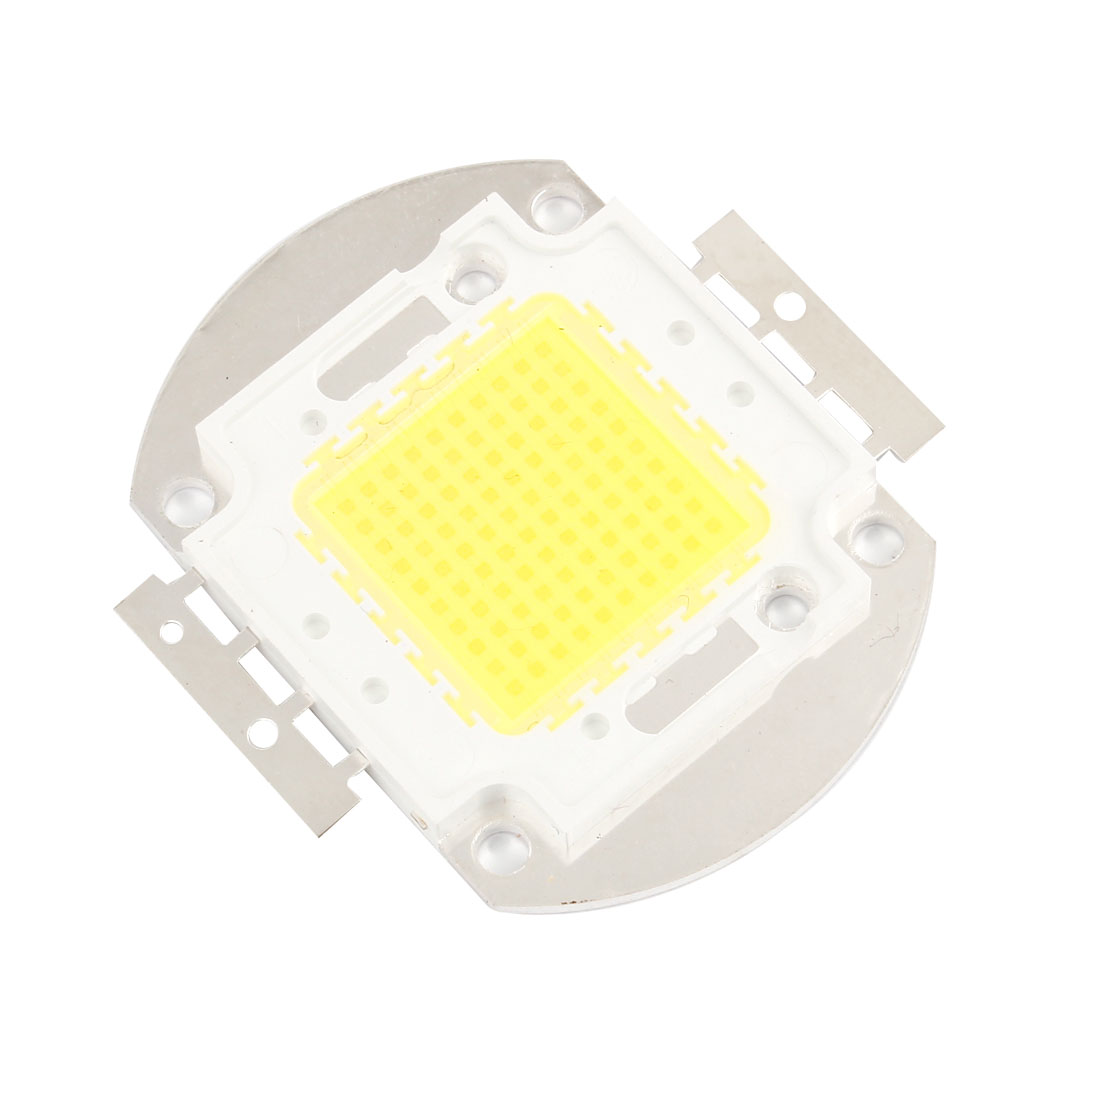 32-34V 3000mA 100W Pure White Light High Power SMD LED Chip Lamp Bulb